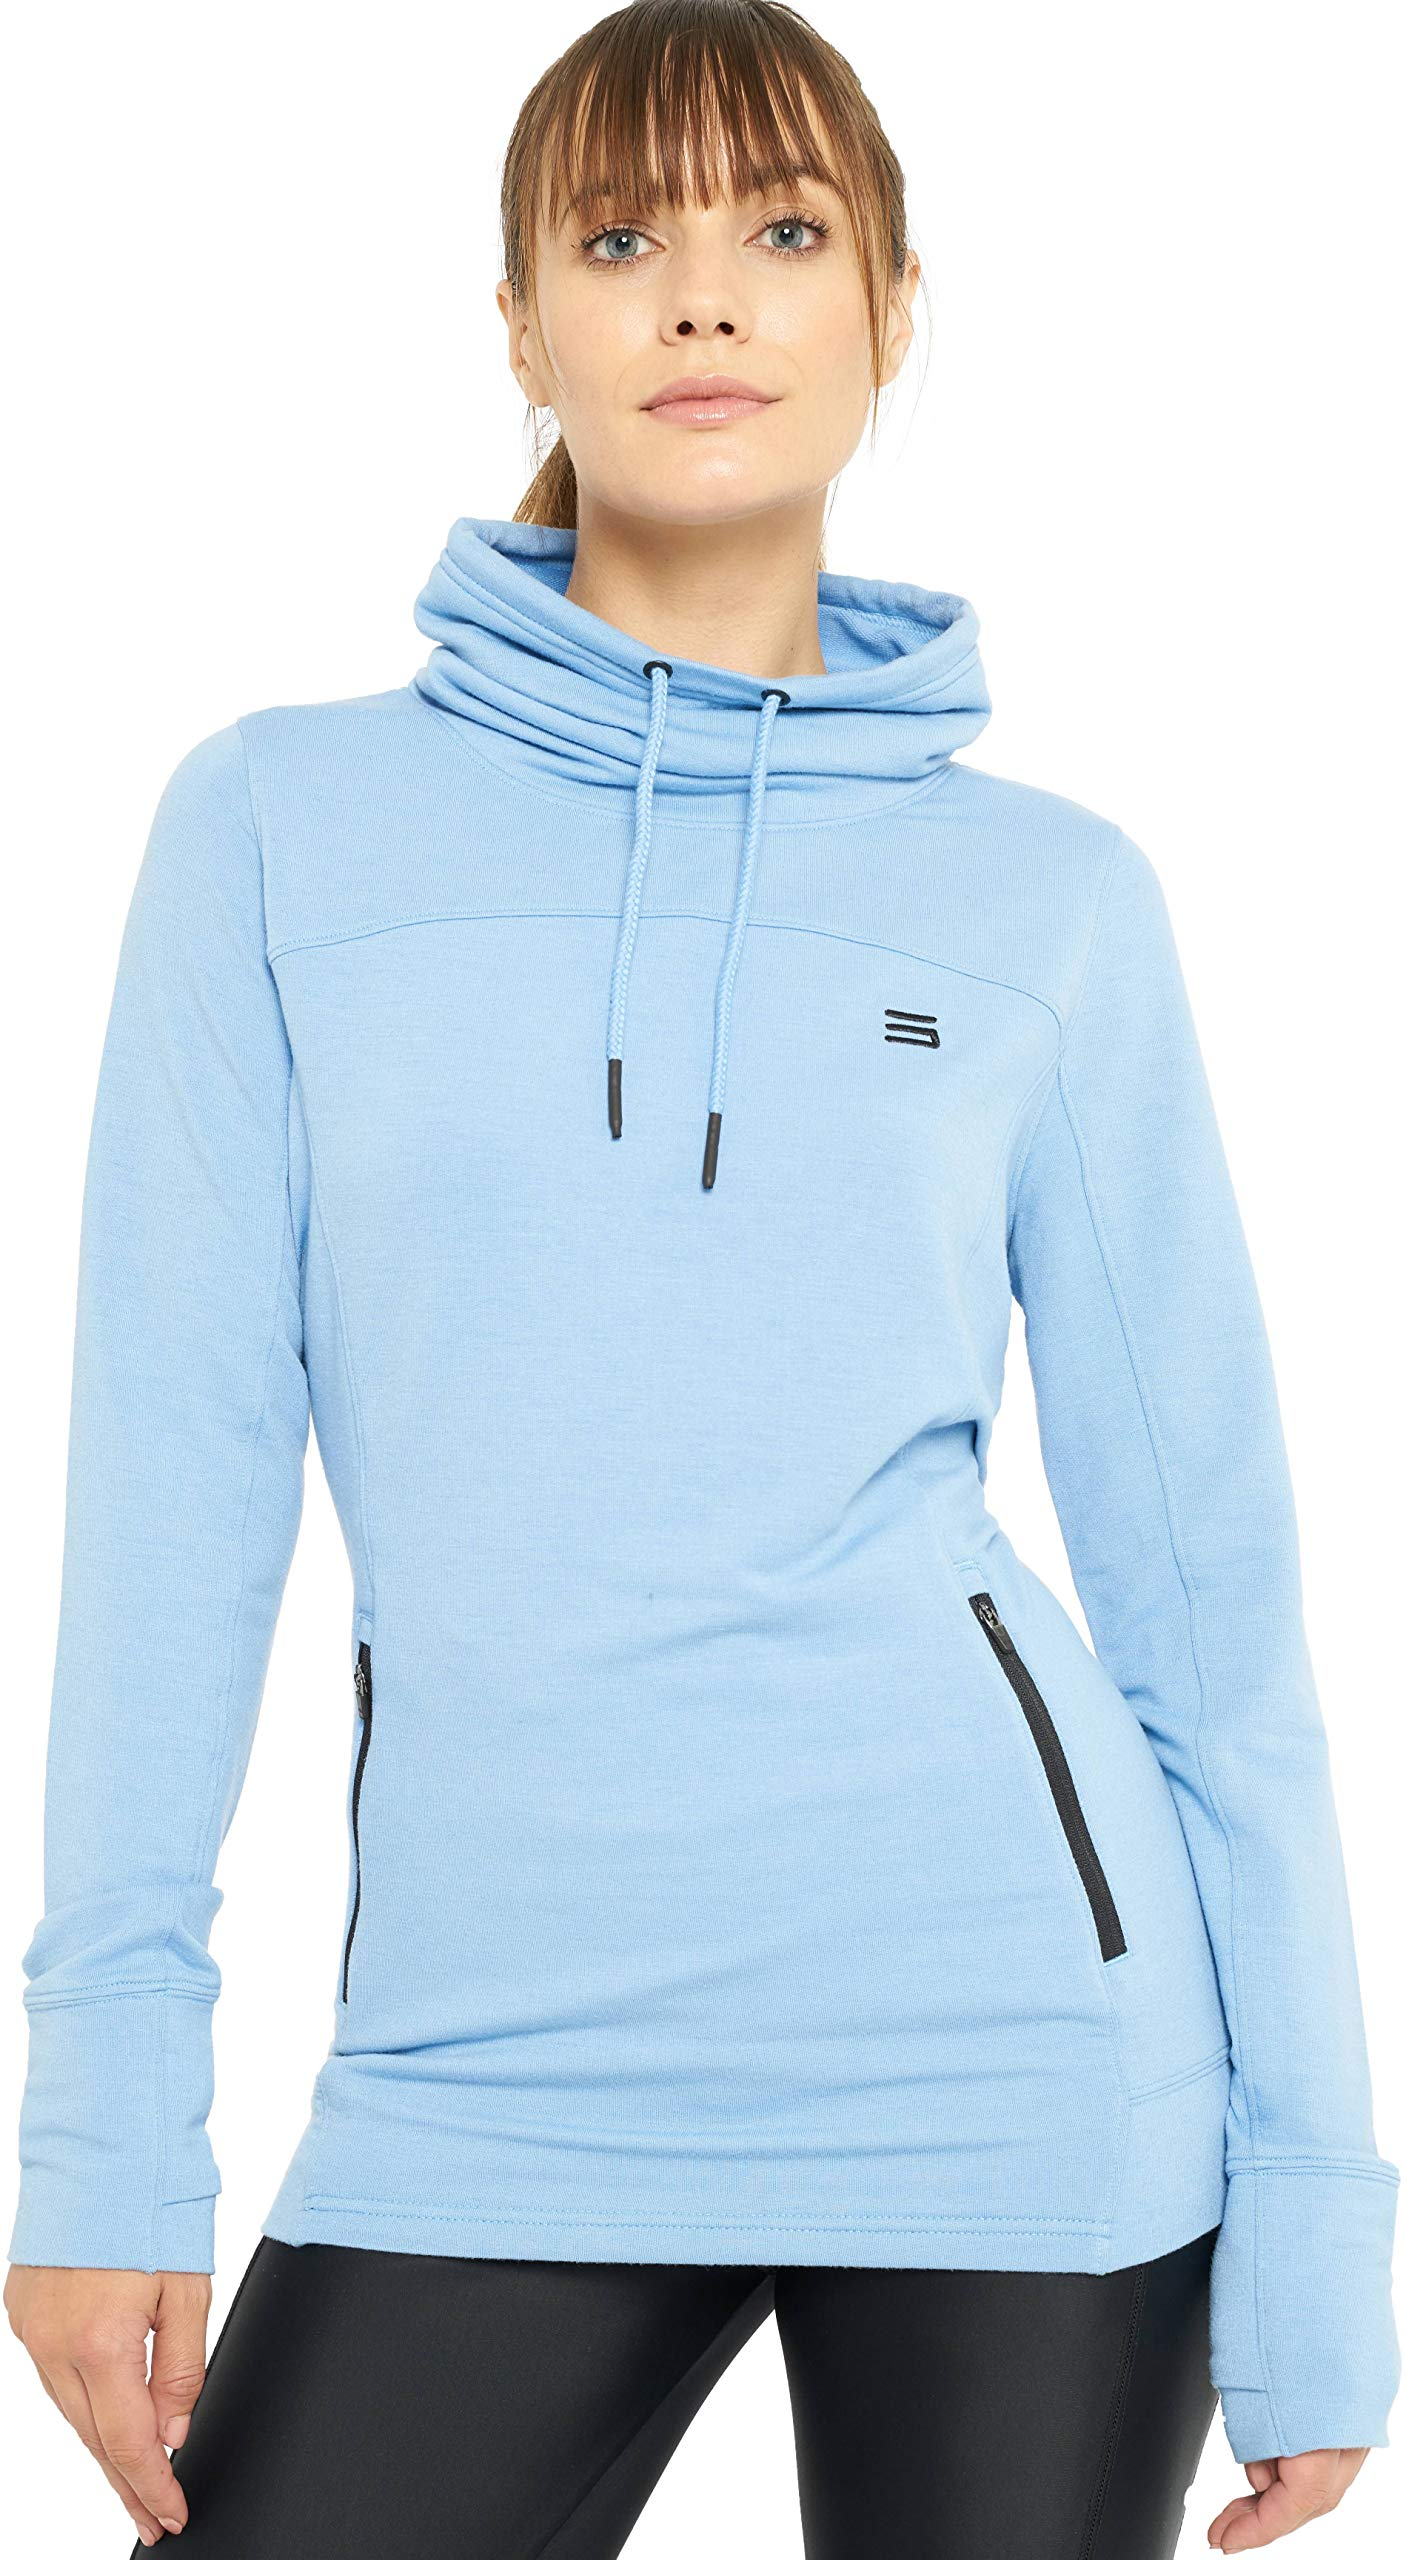 Three Sixty Six Dry Fit Pullover Sweatshirt for Women - Fleece Cowl Neck Sweater Jacket - Zip Pockets and Thumbholes Sky Blue by Three Sixty Six